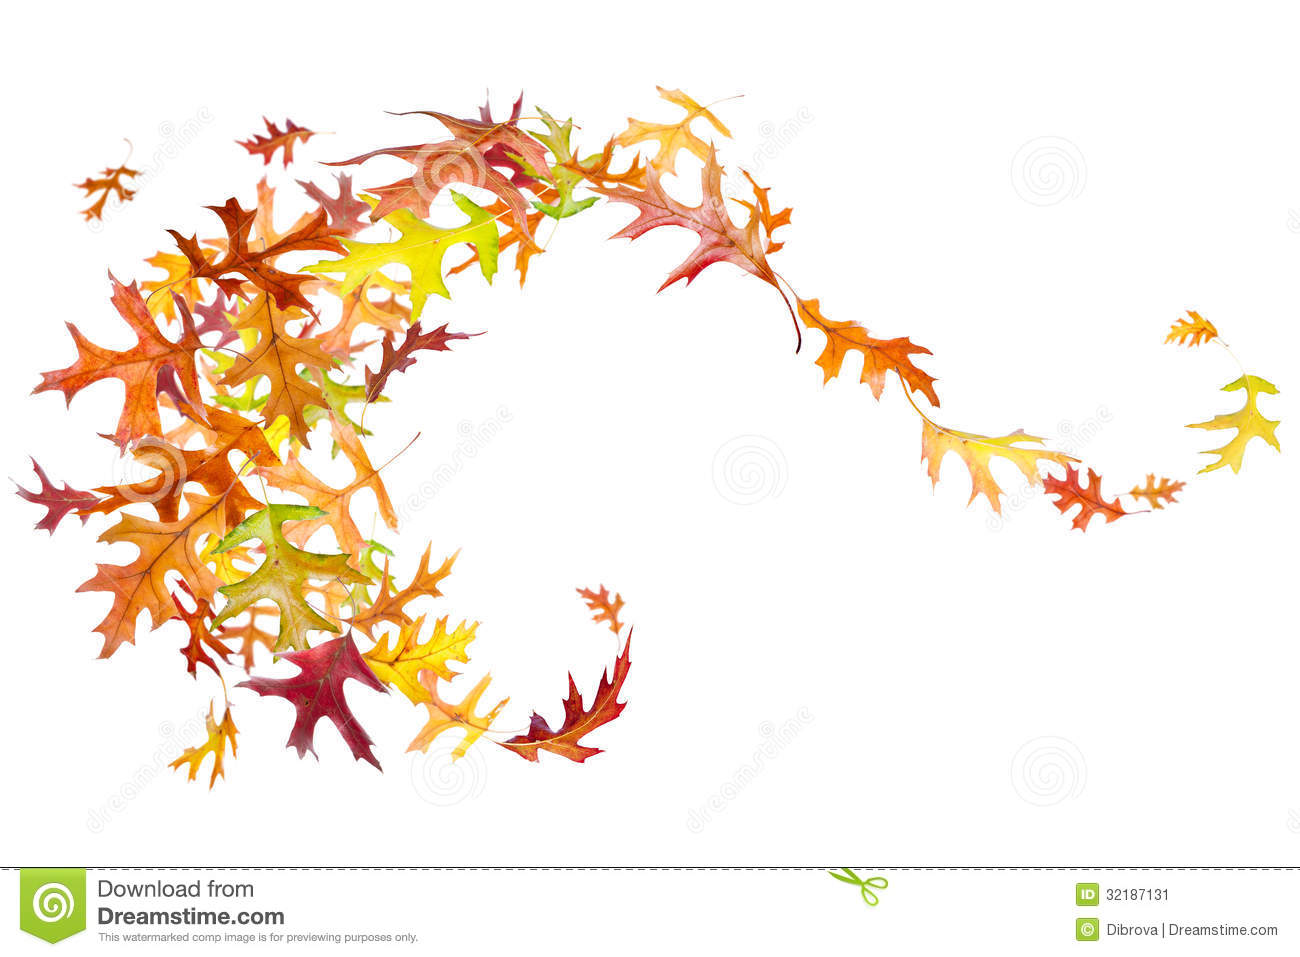 Leaves clipart windy Wind Blowing Leaves Art Blowing